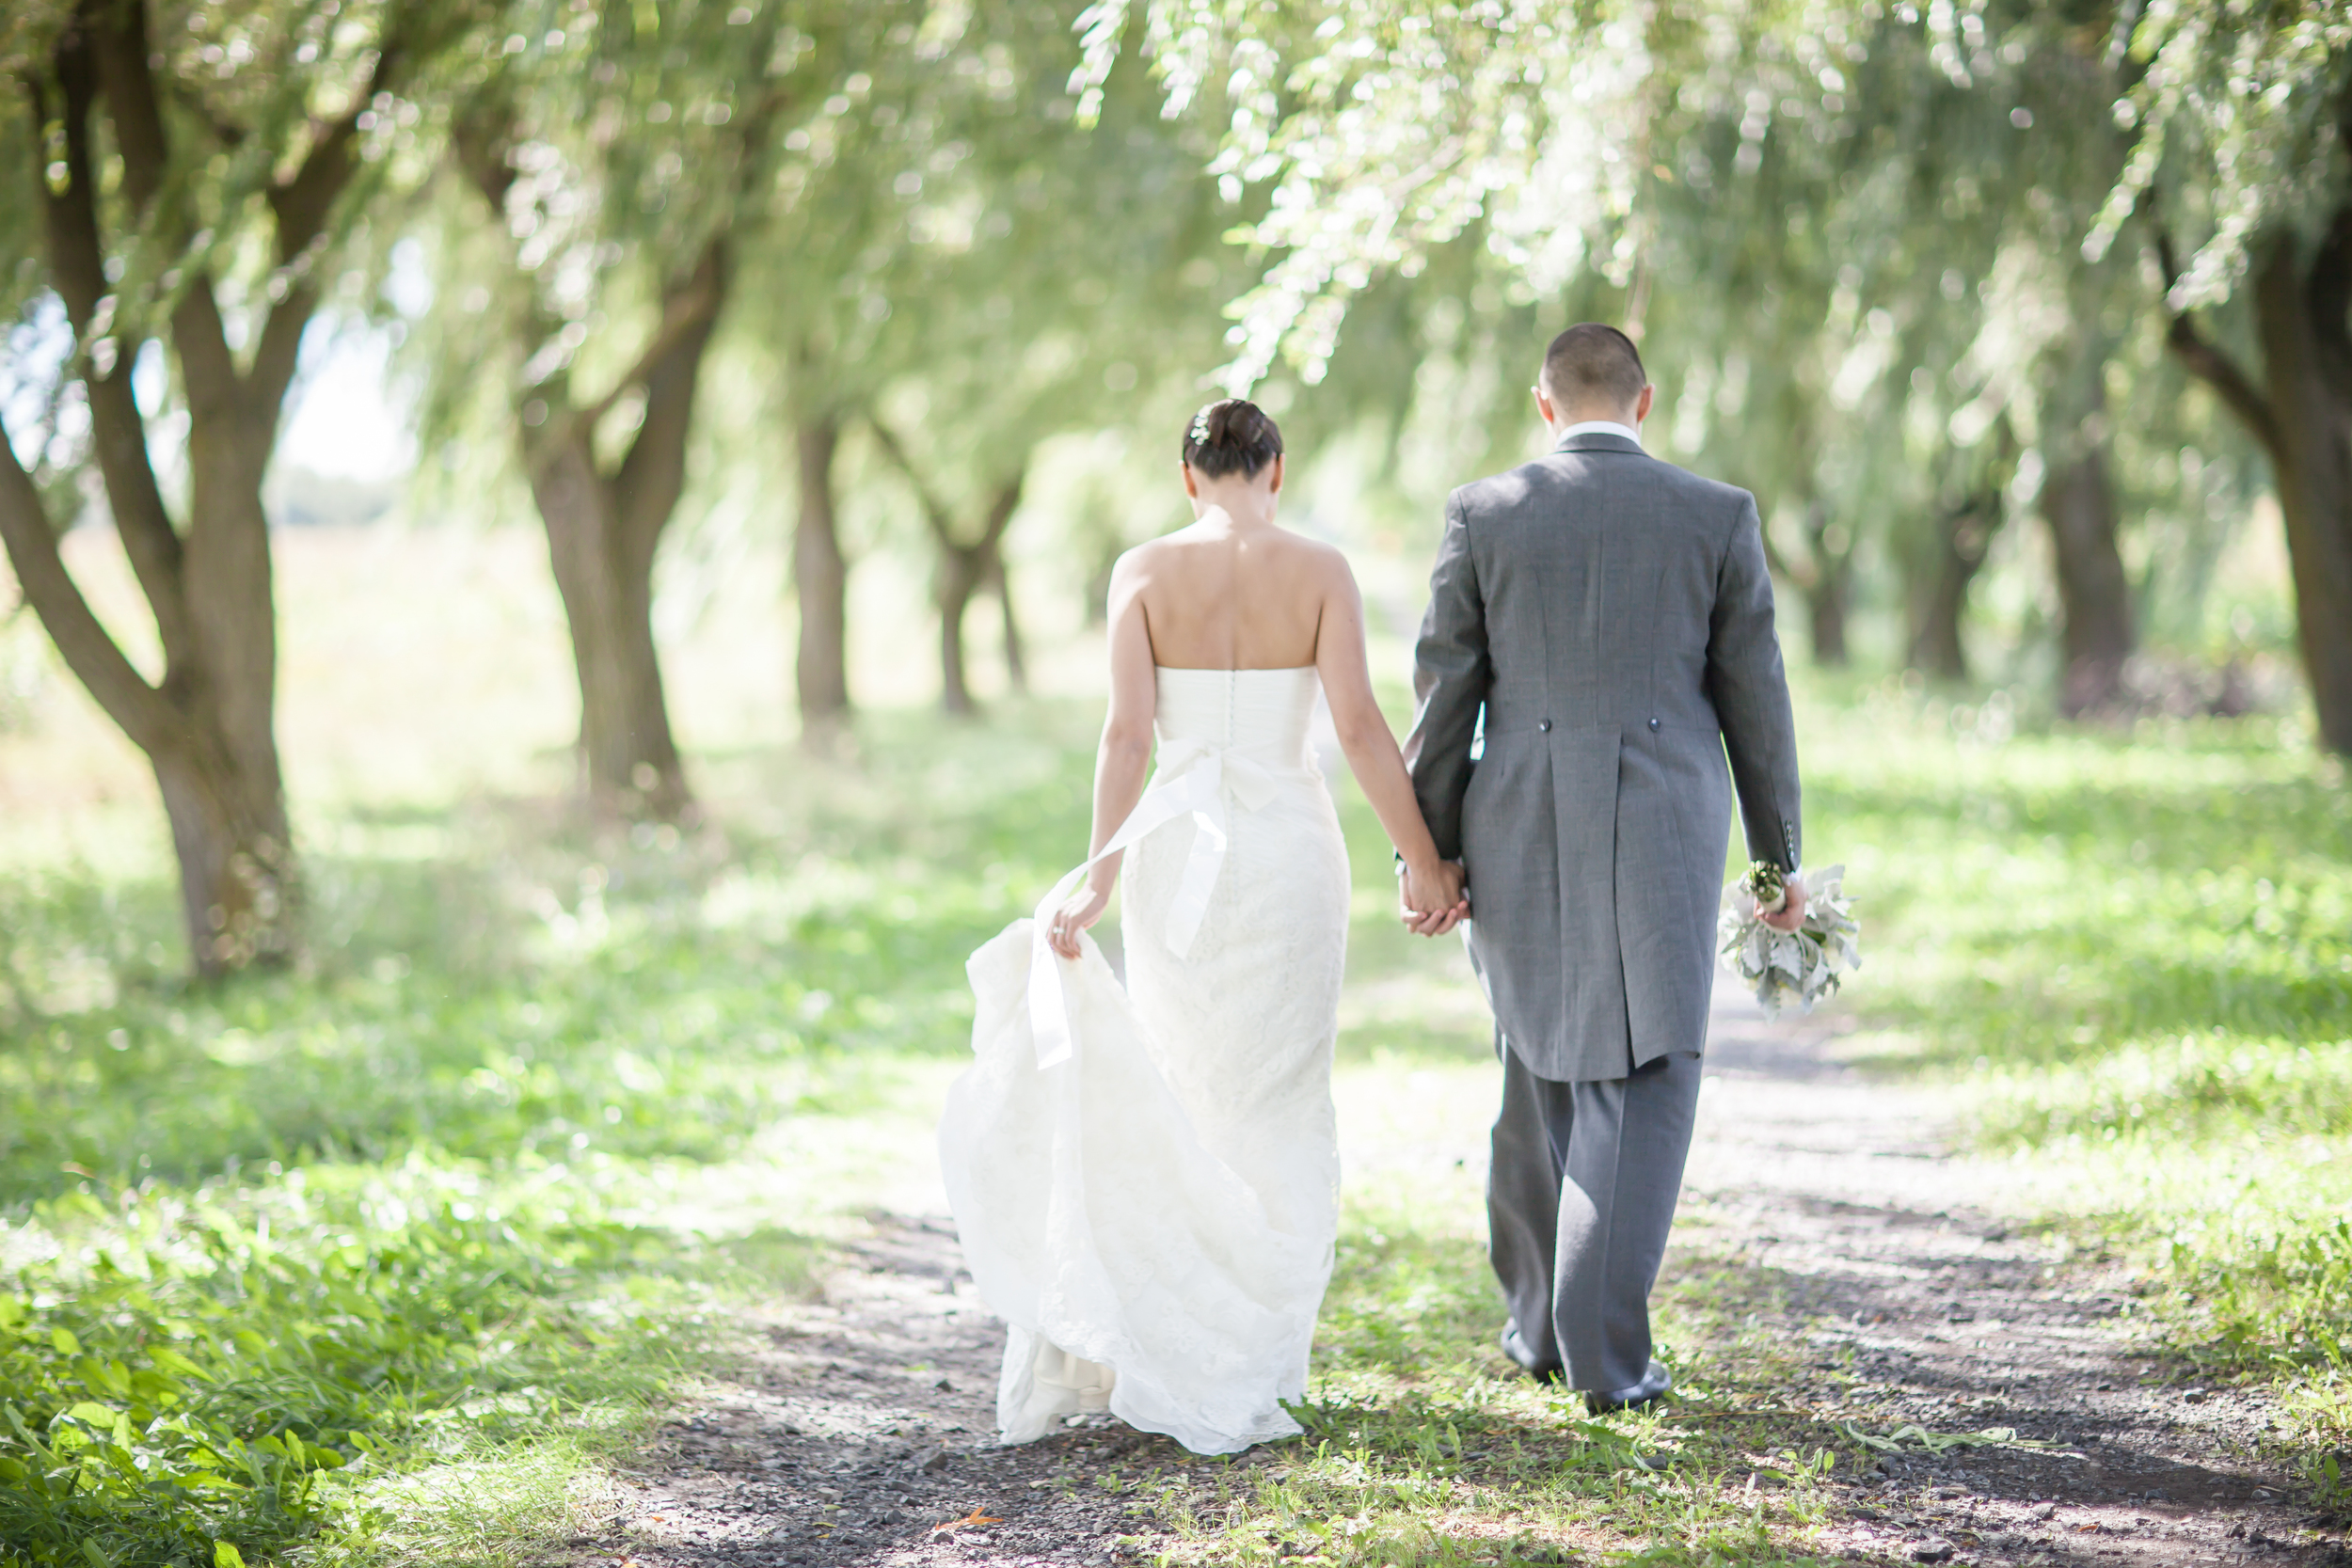 Bride and groom walking through a willow tree farm